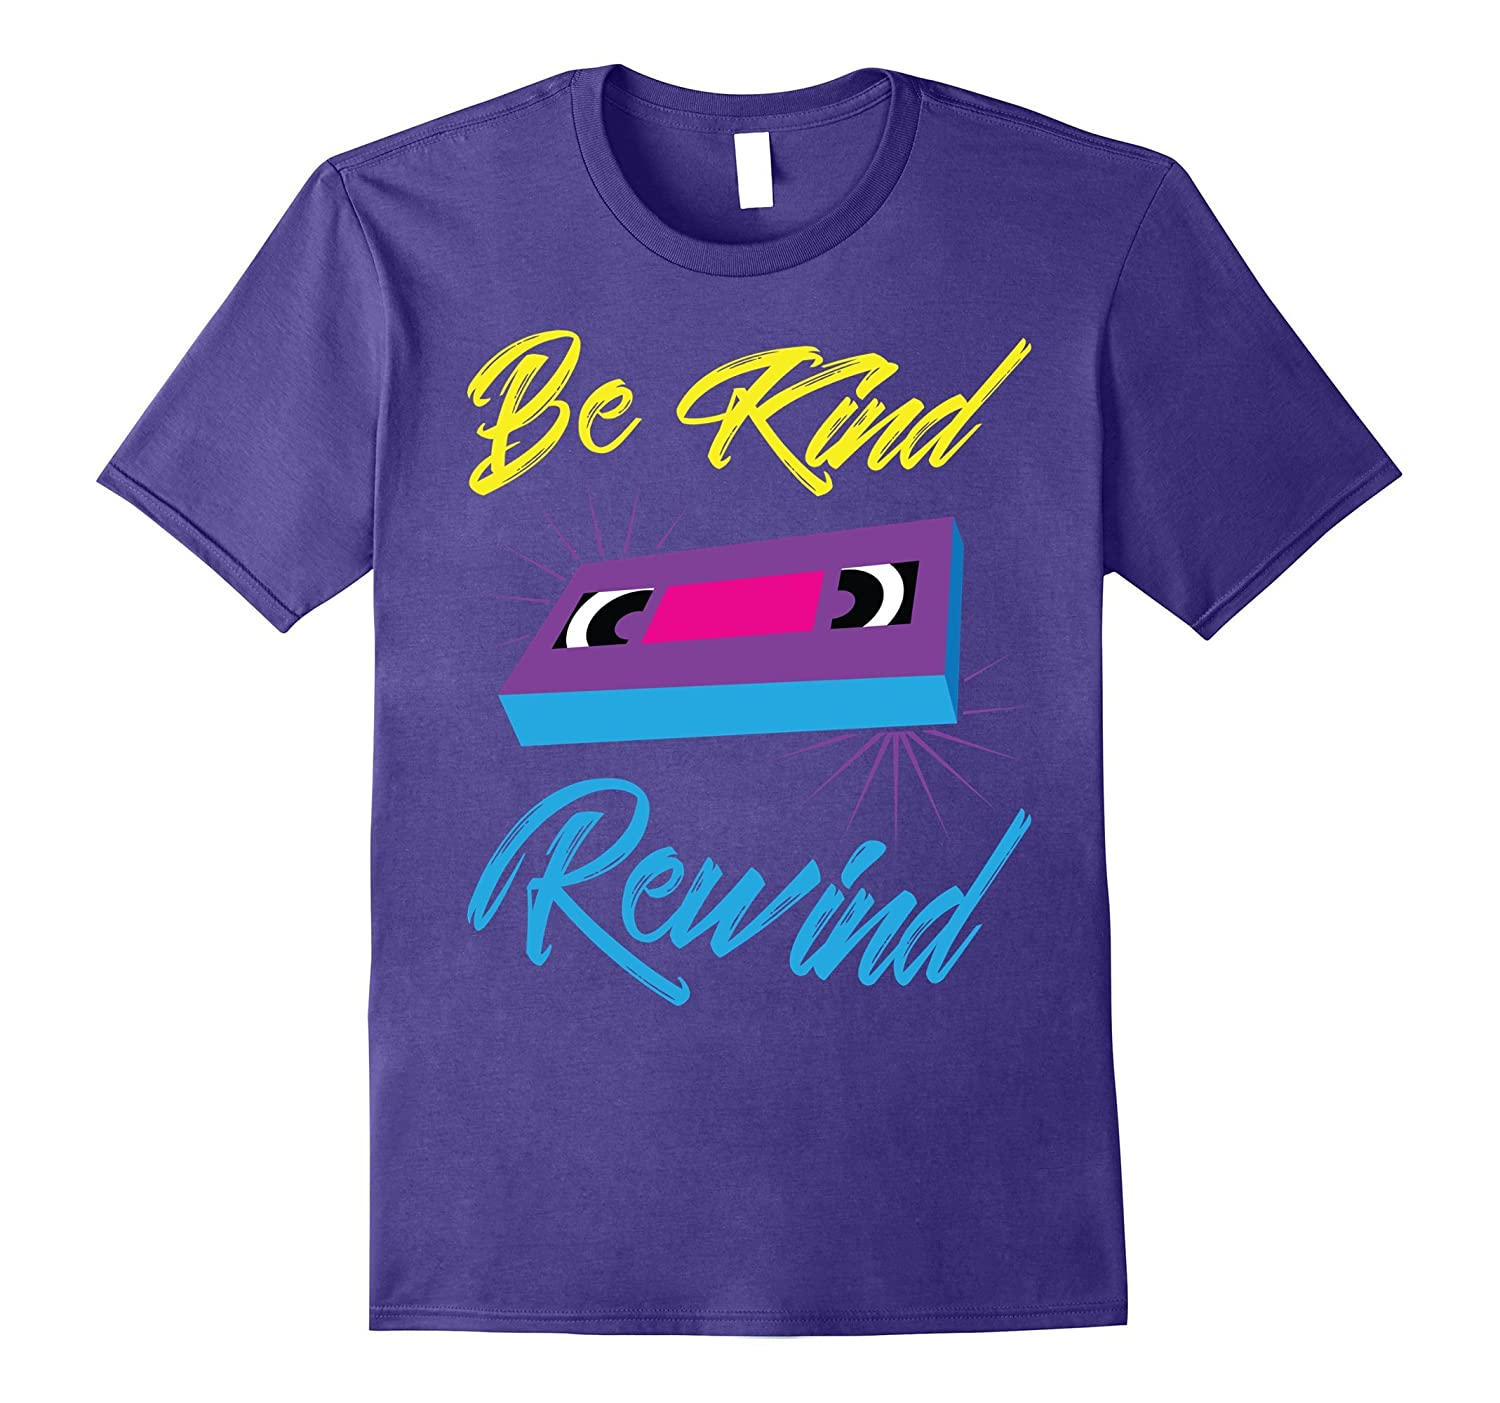 Funny VHS VCR Shirt - Be Kind Rewind Retro Vintage 80s 90s T-ah my shirt one gift